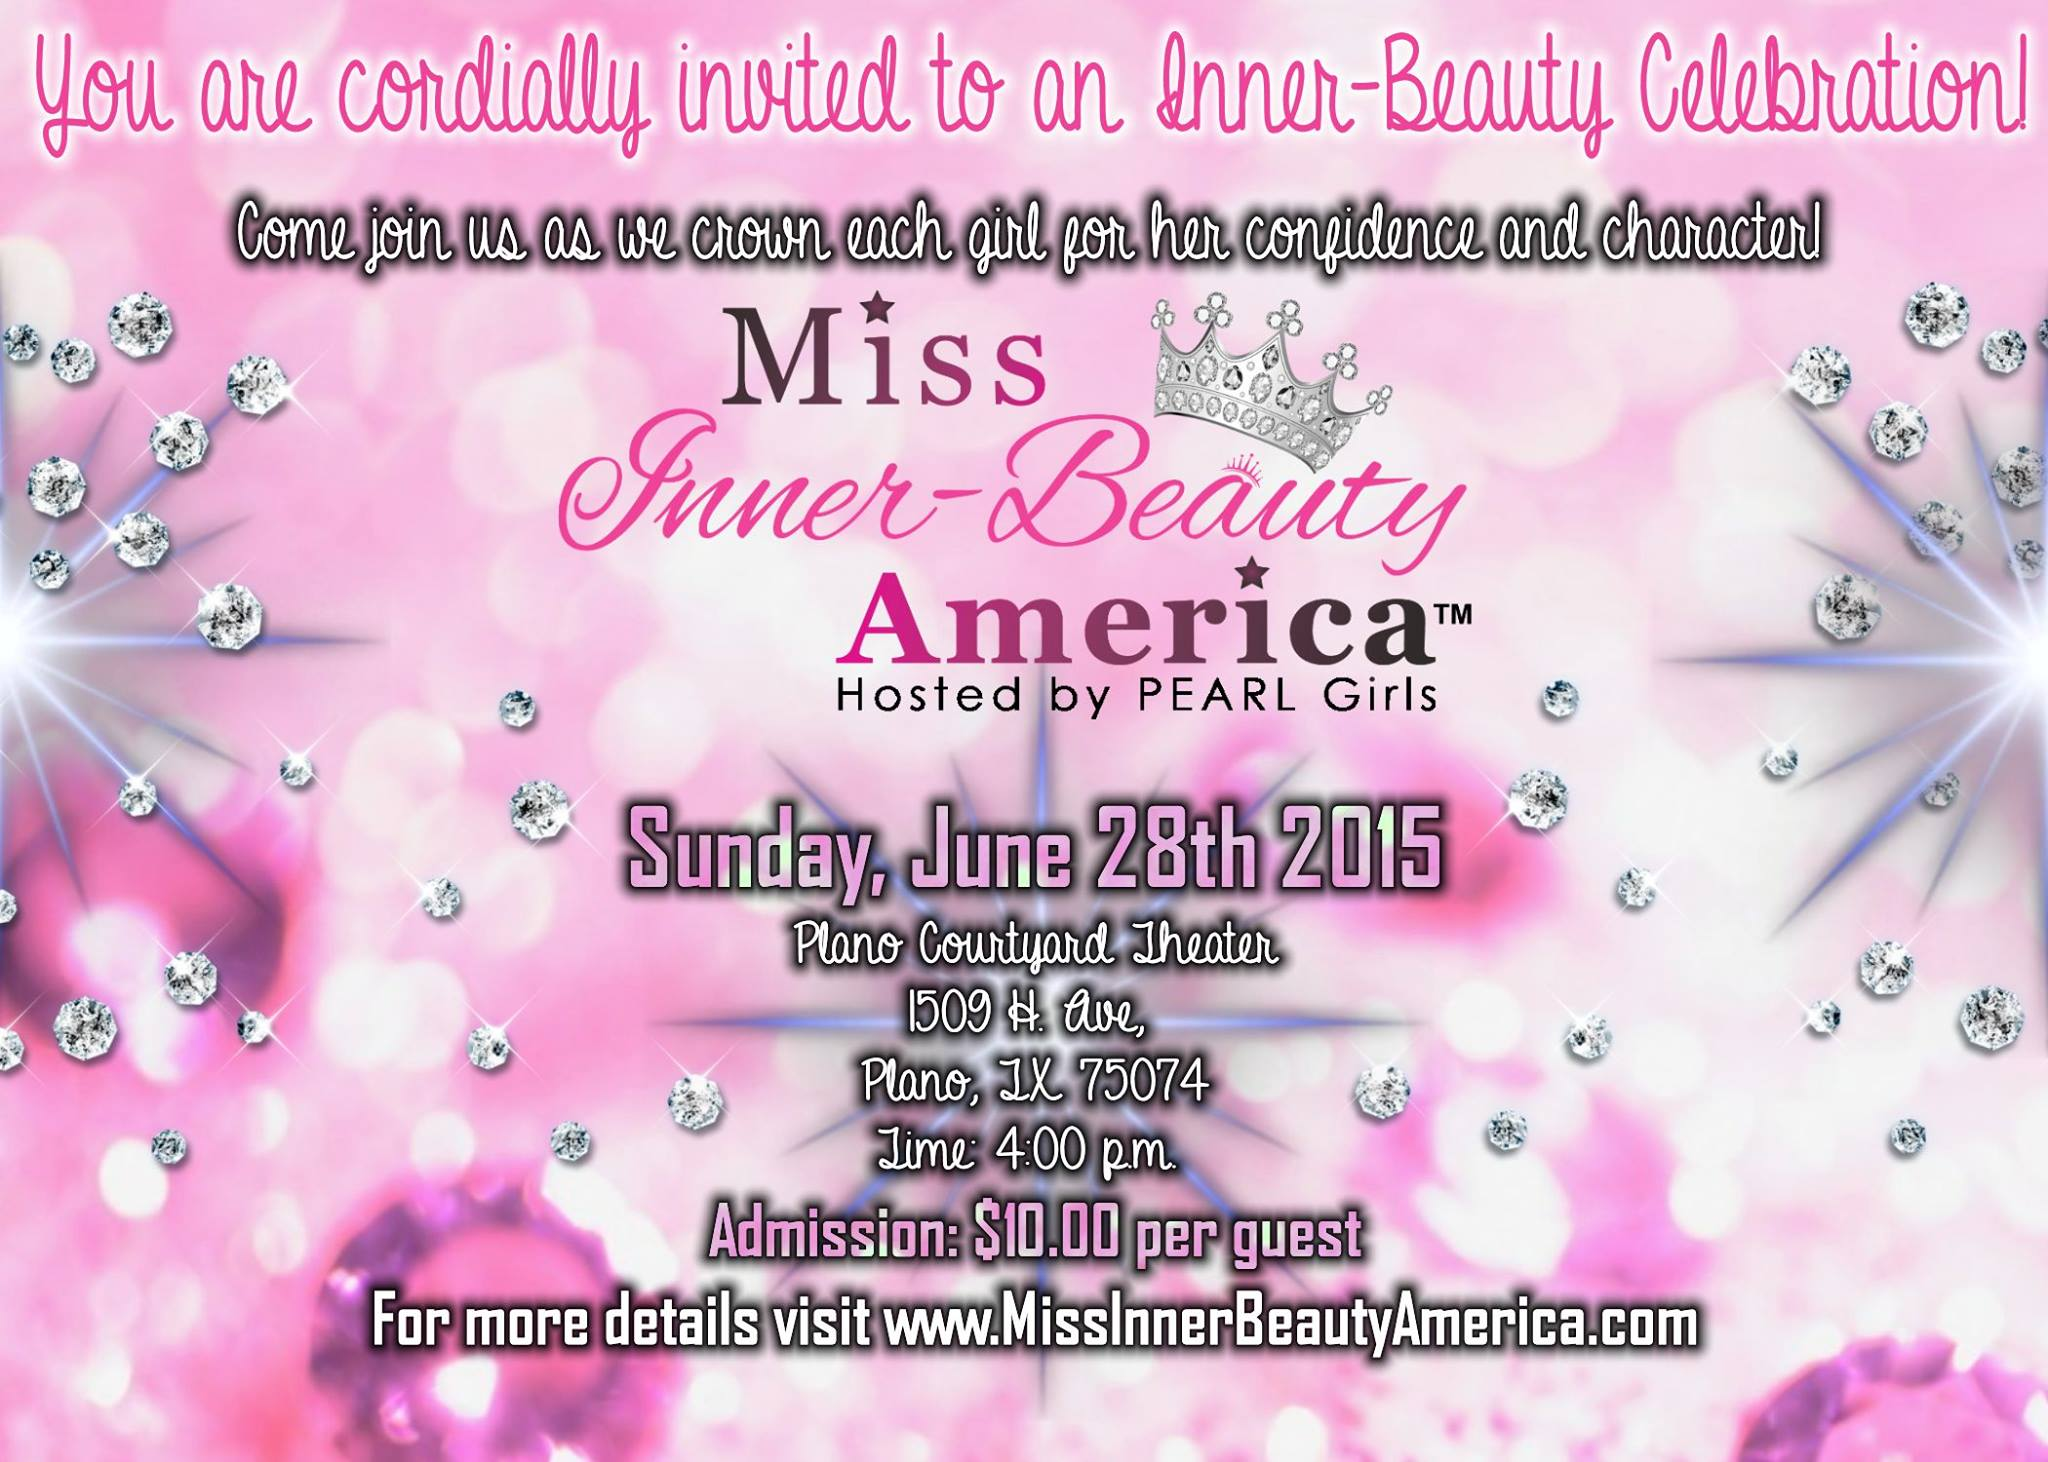 invite to pageant flyer 2015